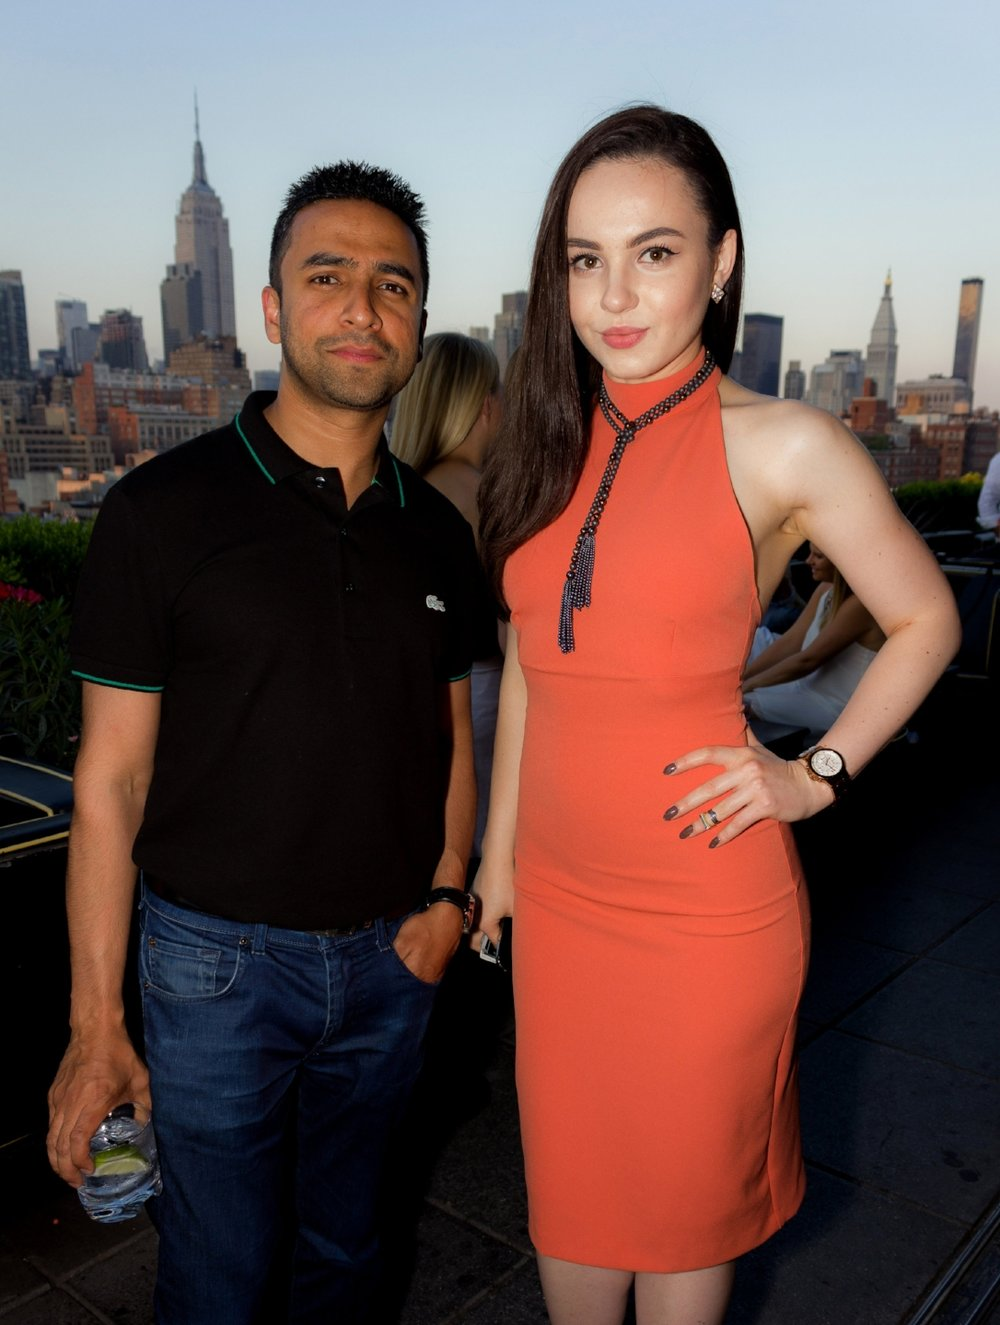 Sameet Qureshi & Olga Gavriluk at PHD PENTHOUSE at DREAM - OLGA PARKERS JEWELRY Launch